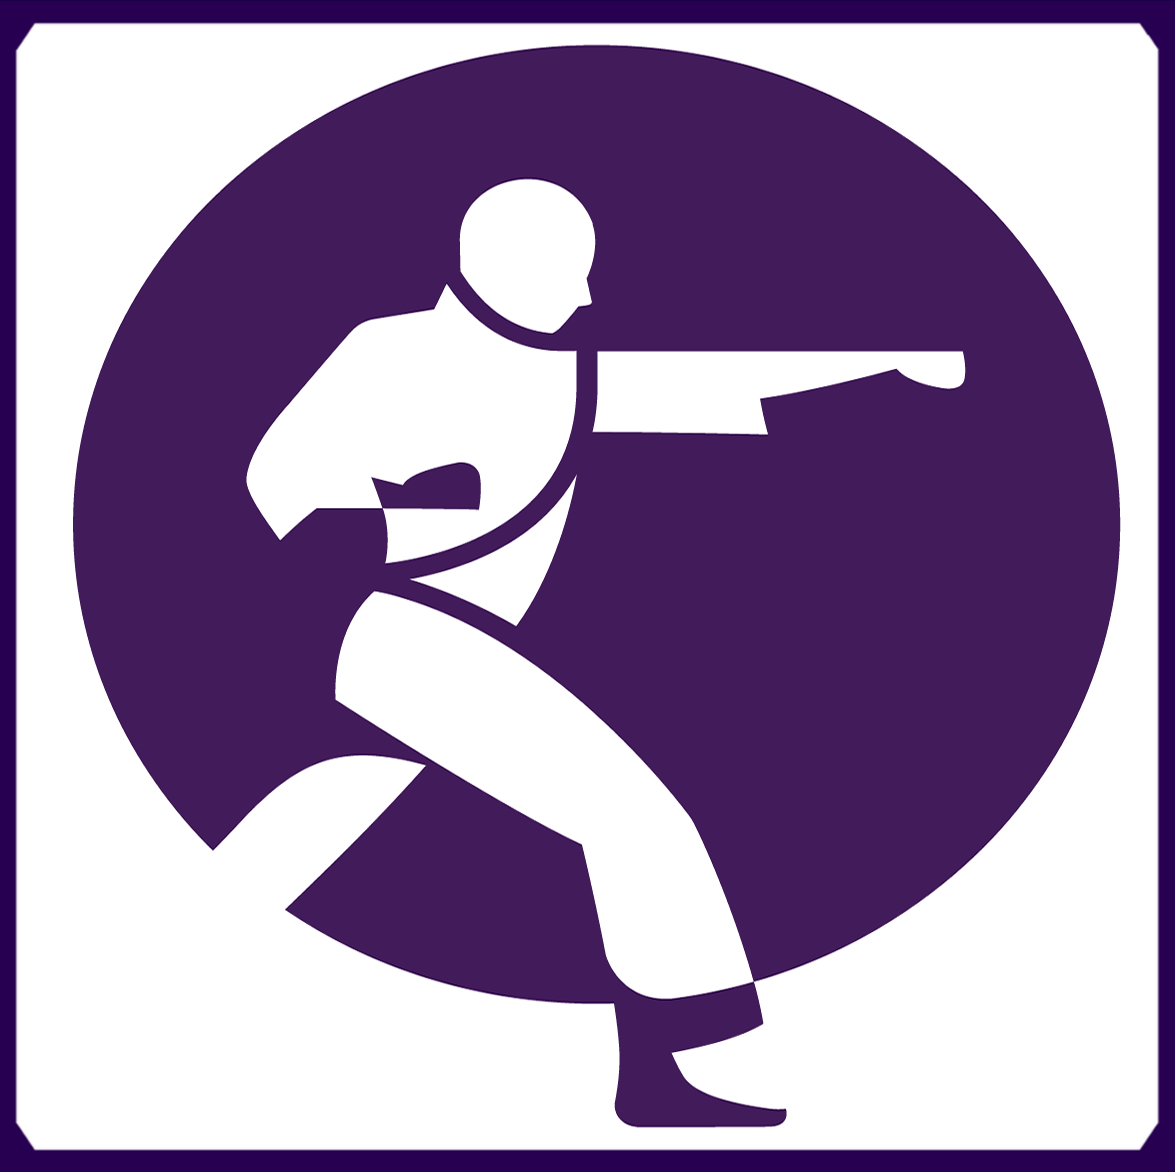 Silhouette_Karate_Large_BakuPurple